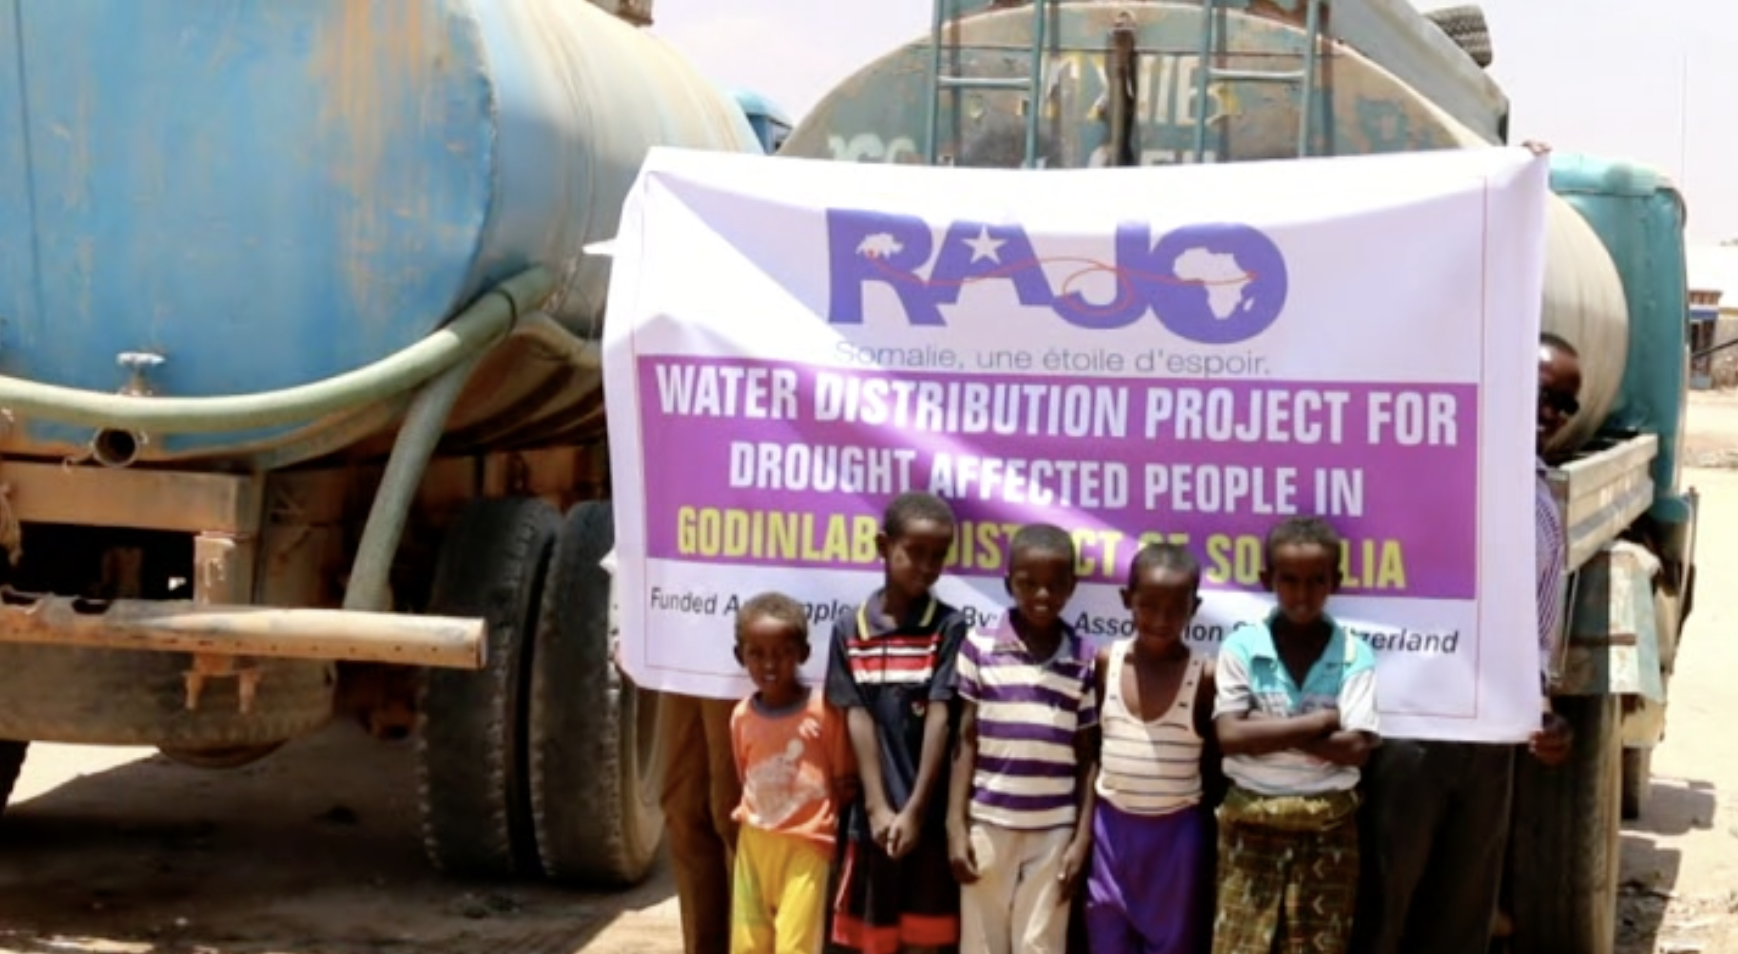 Children in front of a tanker truck about to deliver water